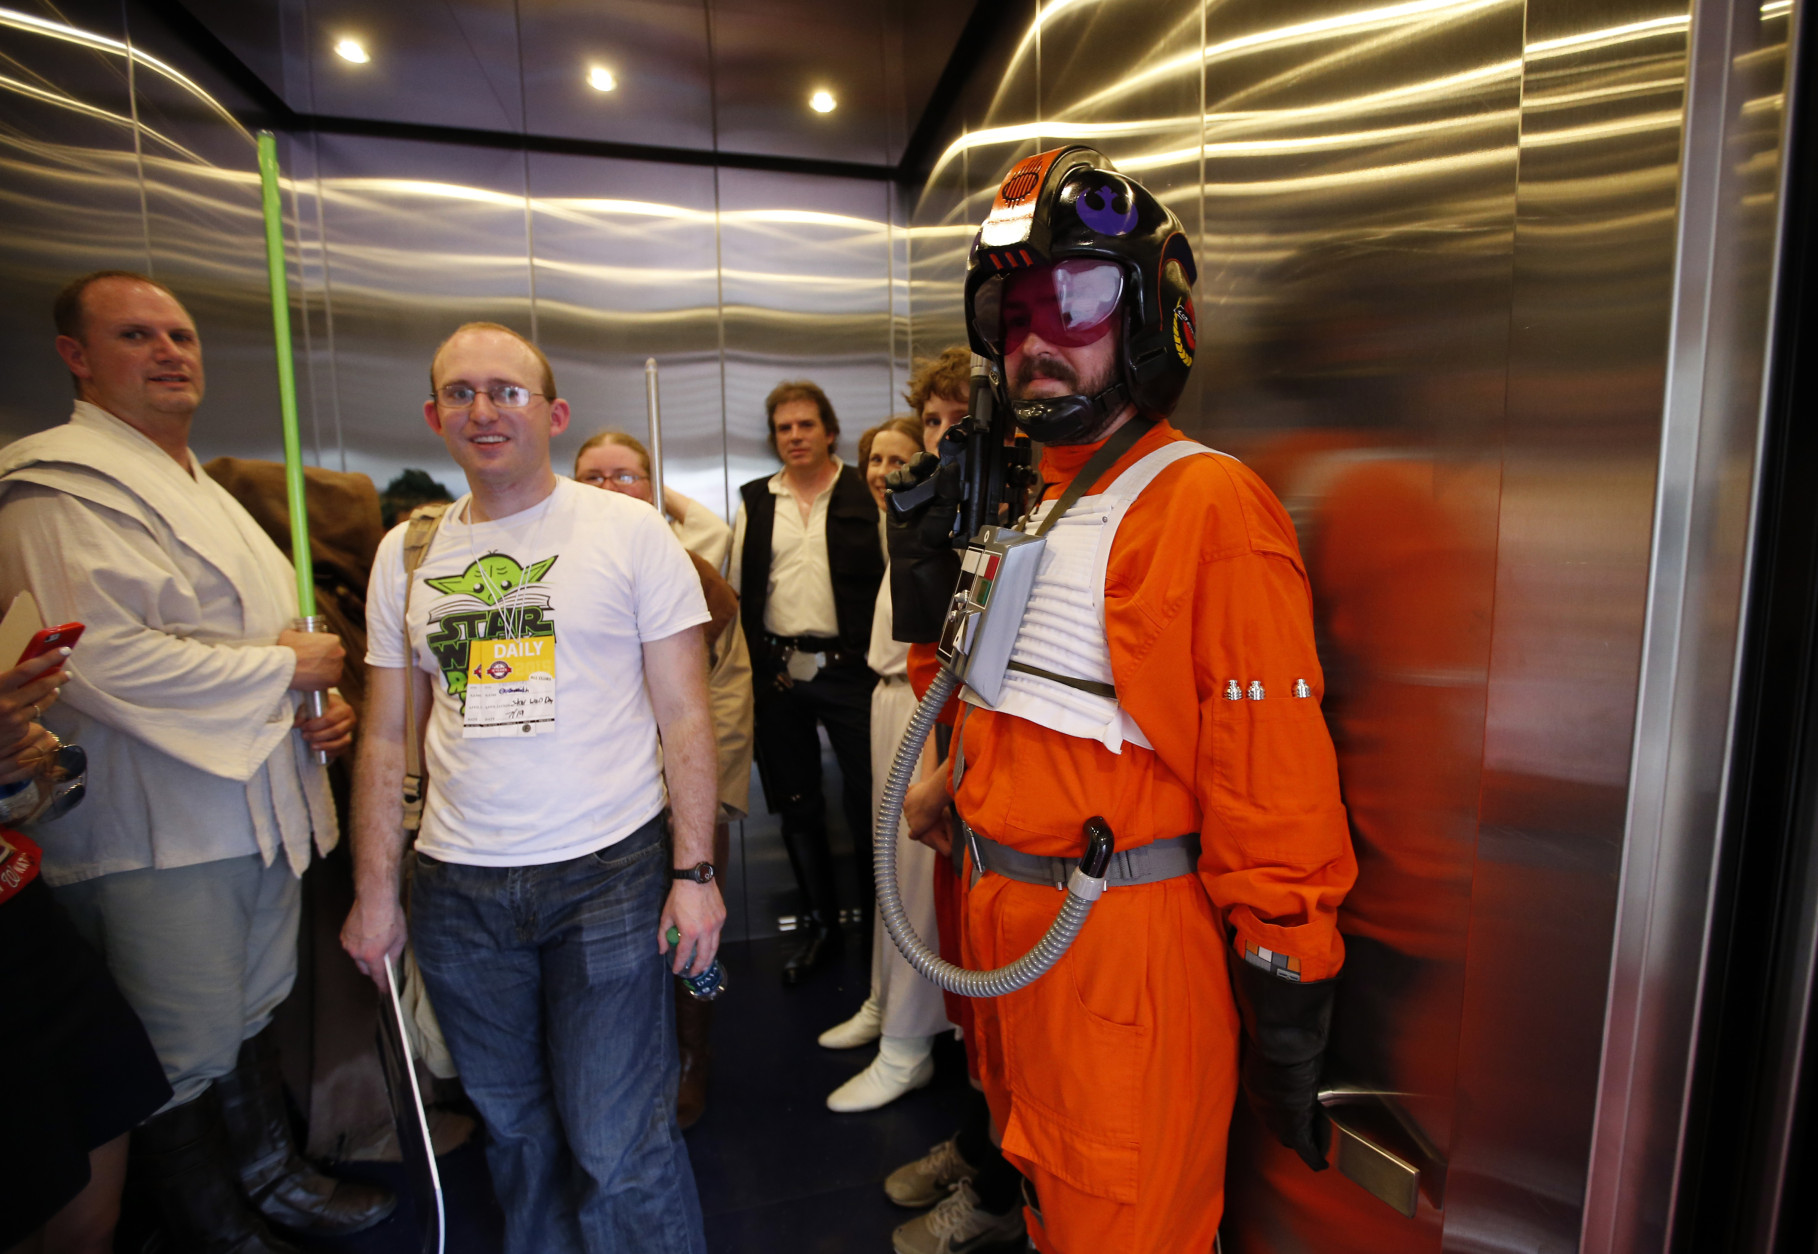 People dressed as Star Wars characters crowd in an elevator to take a break on Star Wars day before a baseball game between the Washington Nationals and the Los Angeles Dodgers at Nationals Park, Sunday, July 19, 2015, in Washington. (AP Photo/Alex Brandon)